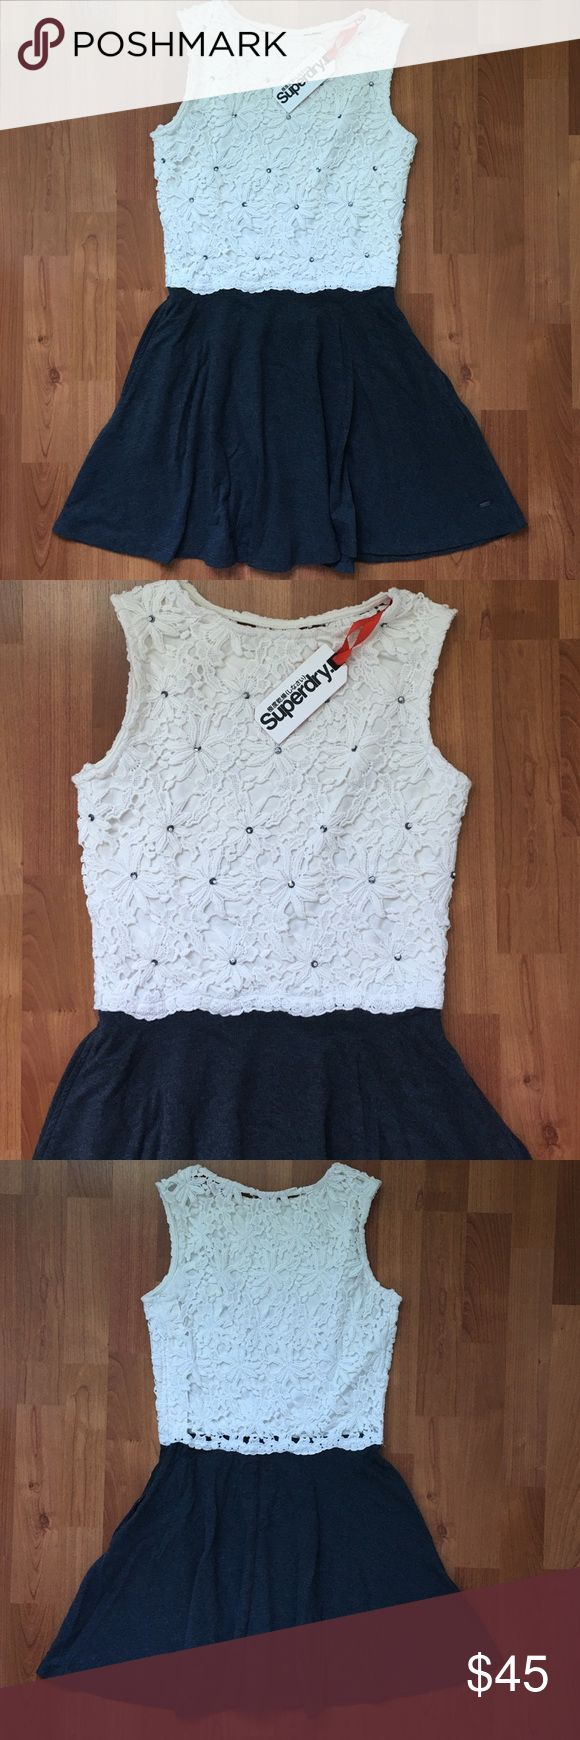 """SUPERDRY Grey White Fit N Flare Lace Skater Dress Superdry Coco Skater Dress. Dark grey and white lace dress with sequins and beads.   ❥ Color: Charcoal ❥ Cotton blend.  ❥ NWT. Stored in original bag. ❥ Skirt has pockets.   ❣ No trades. No PayPal. No holds. ❣ ❣ For offers, use the """"Offer"""" button below. ❣ Superdry Dresses"""